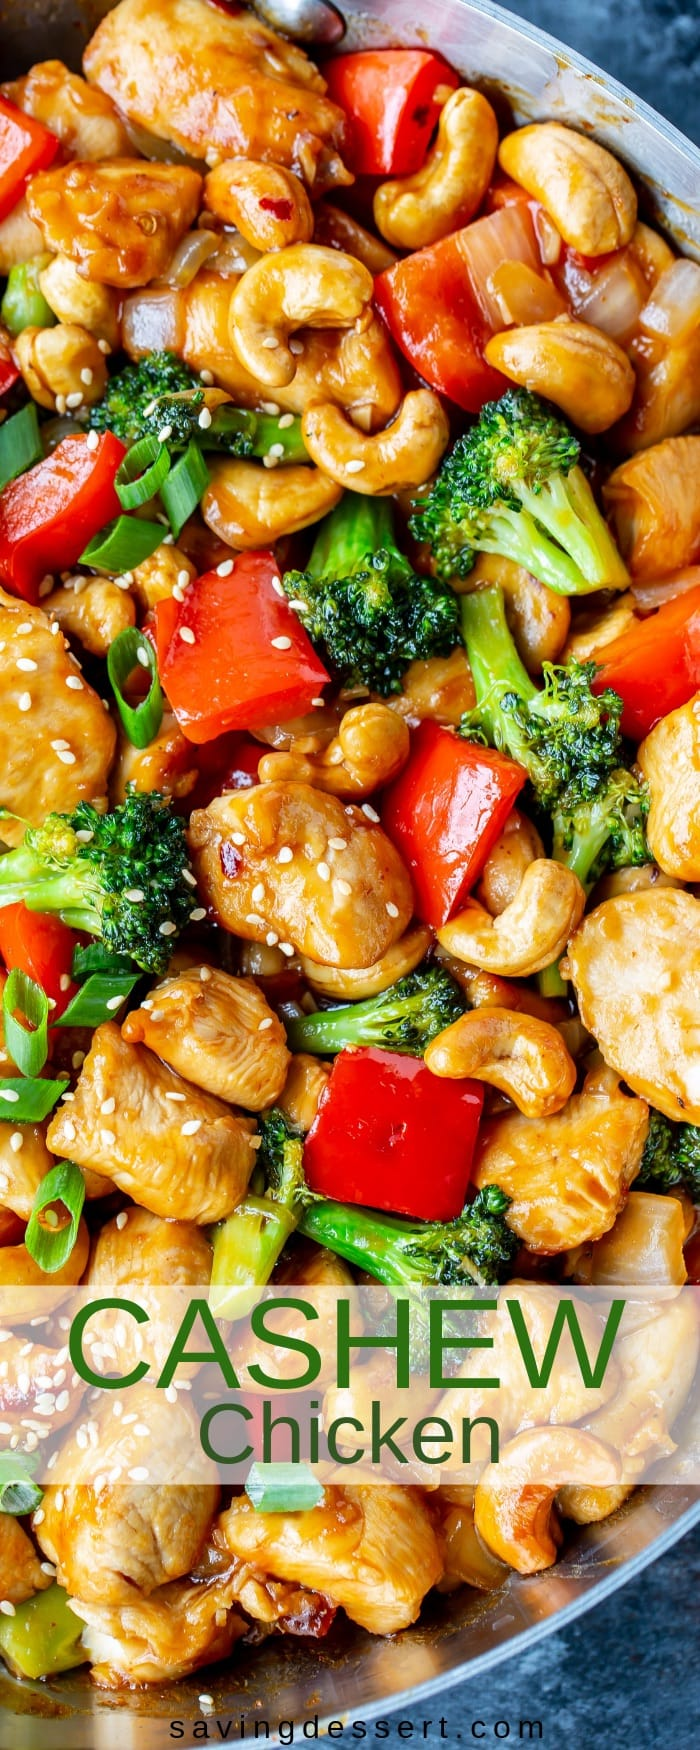 Honey Cashew Chicken - You'll love the sweet heat of this Asian inspired stir-fry loaded with tender chunks of chicken, red bell pepper, onions & tender broccoli. #savingroomfordessert #honeycashewchicken #cashewchicken #Asianstirfry #stirfry #chickenstirfry #chicken #Sriracha #cashew #dinner #weeknightmeal